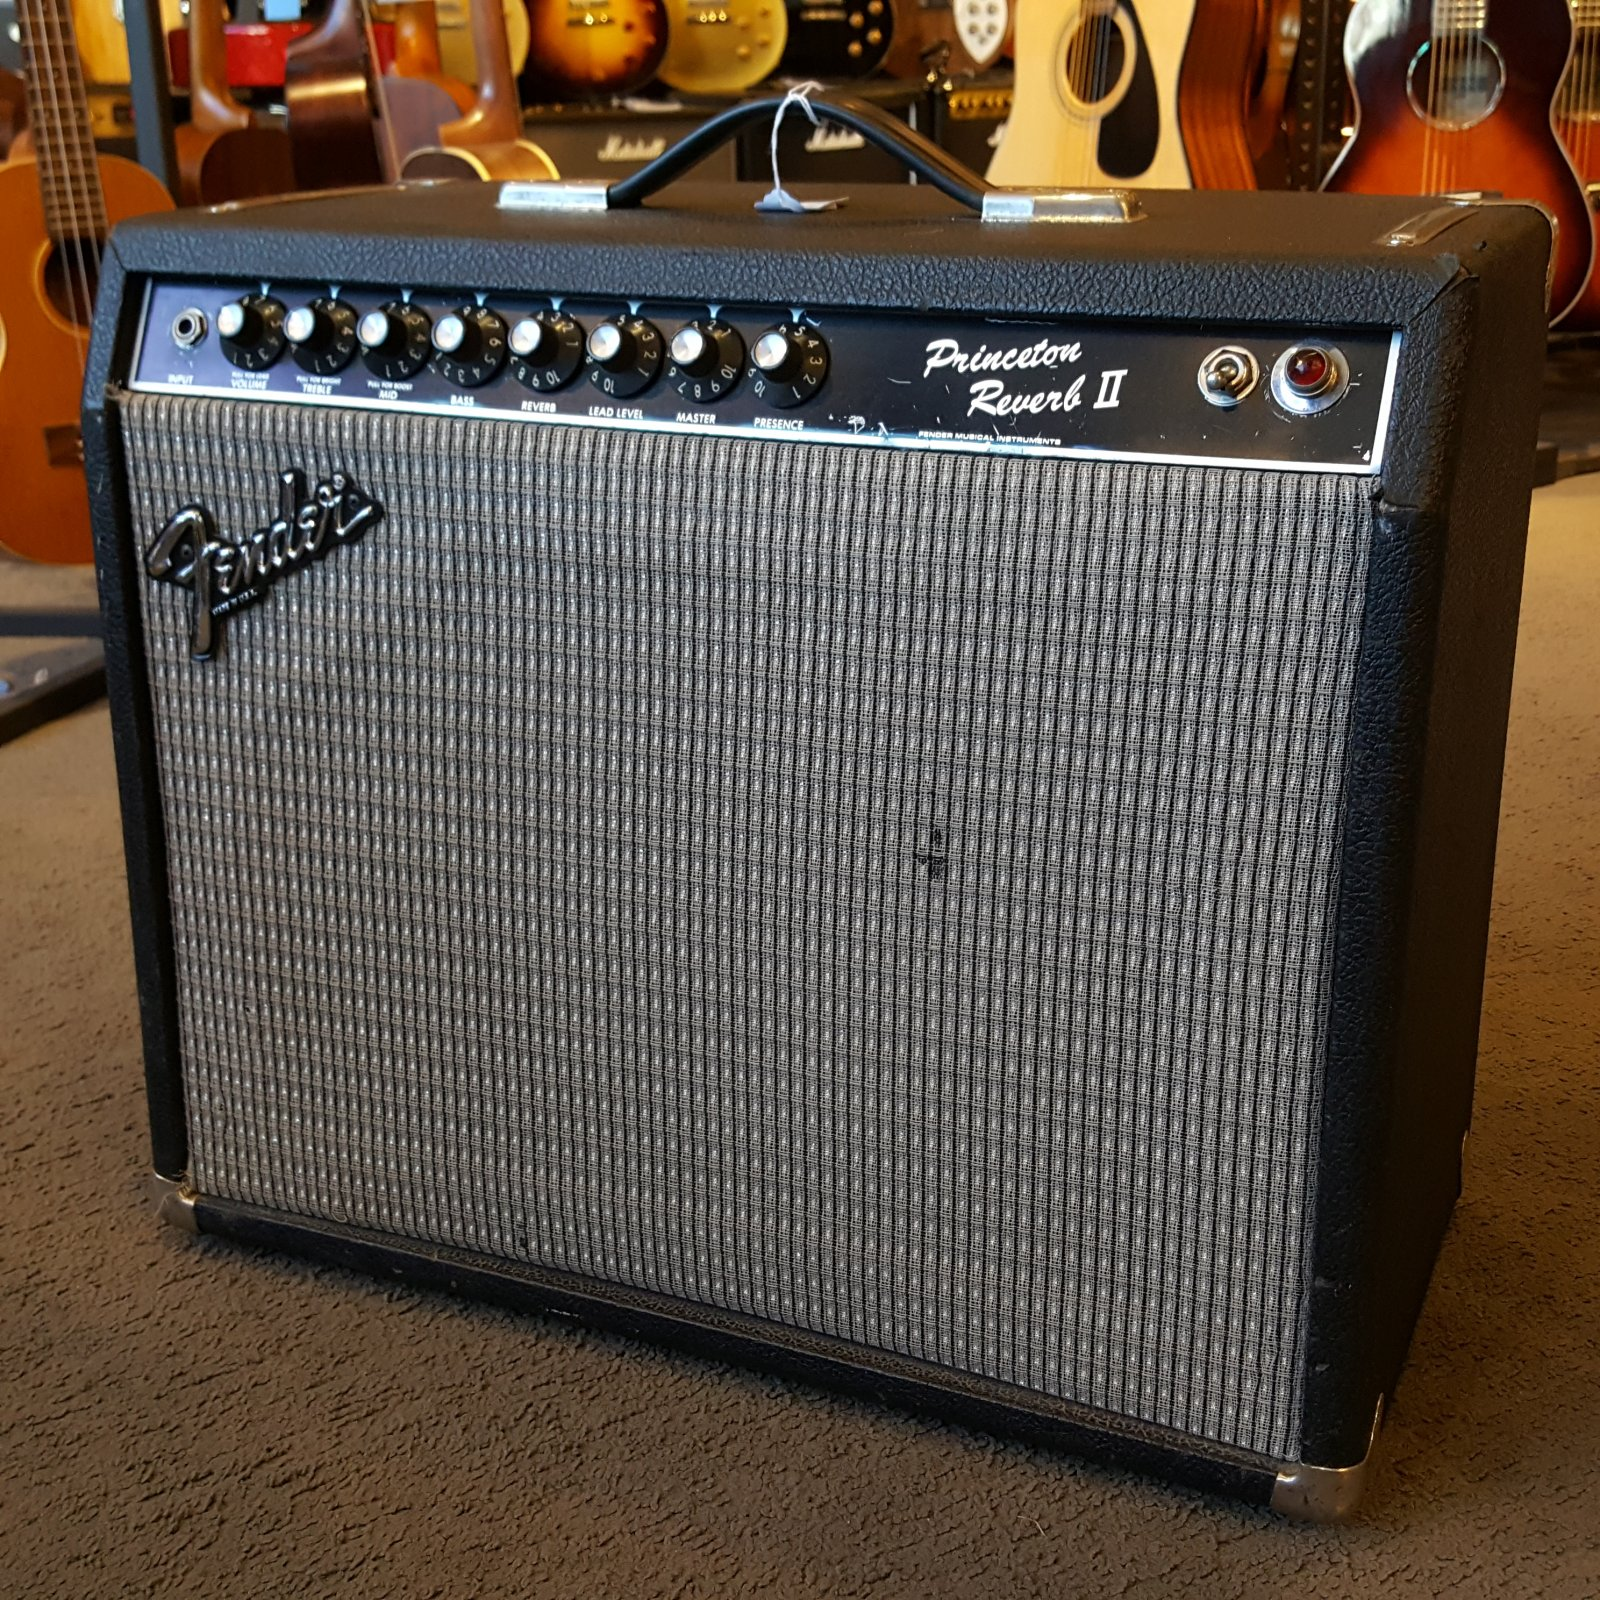 Used Fender Princeton Reverb II 1984 Amp Amplifier Hand Wired